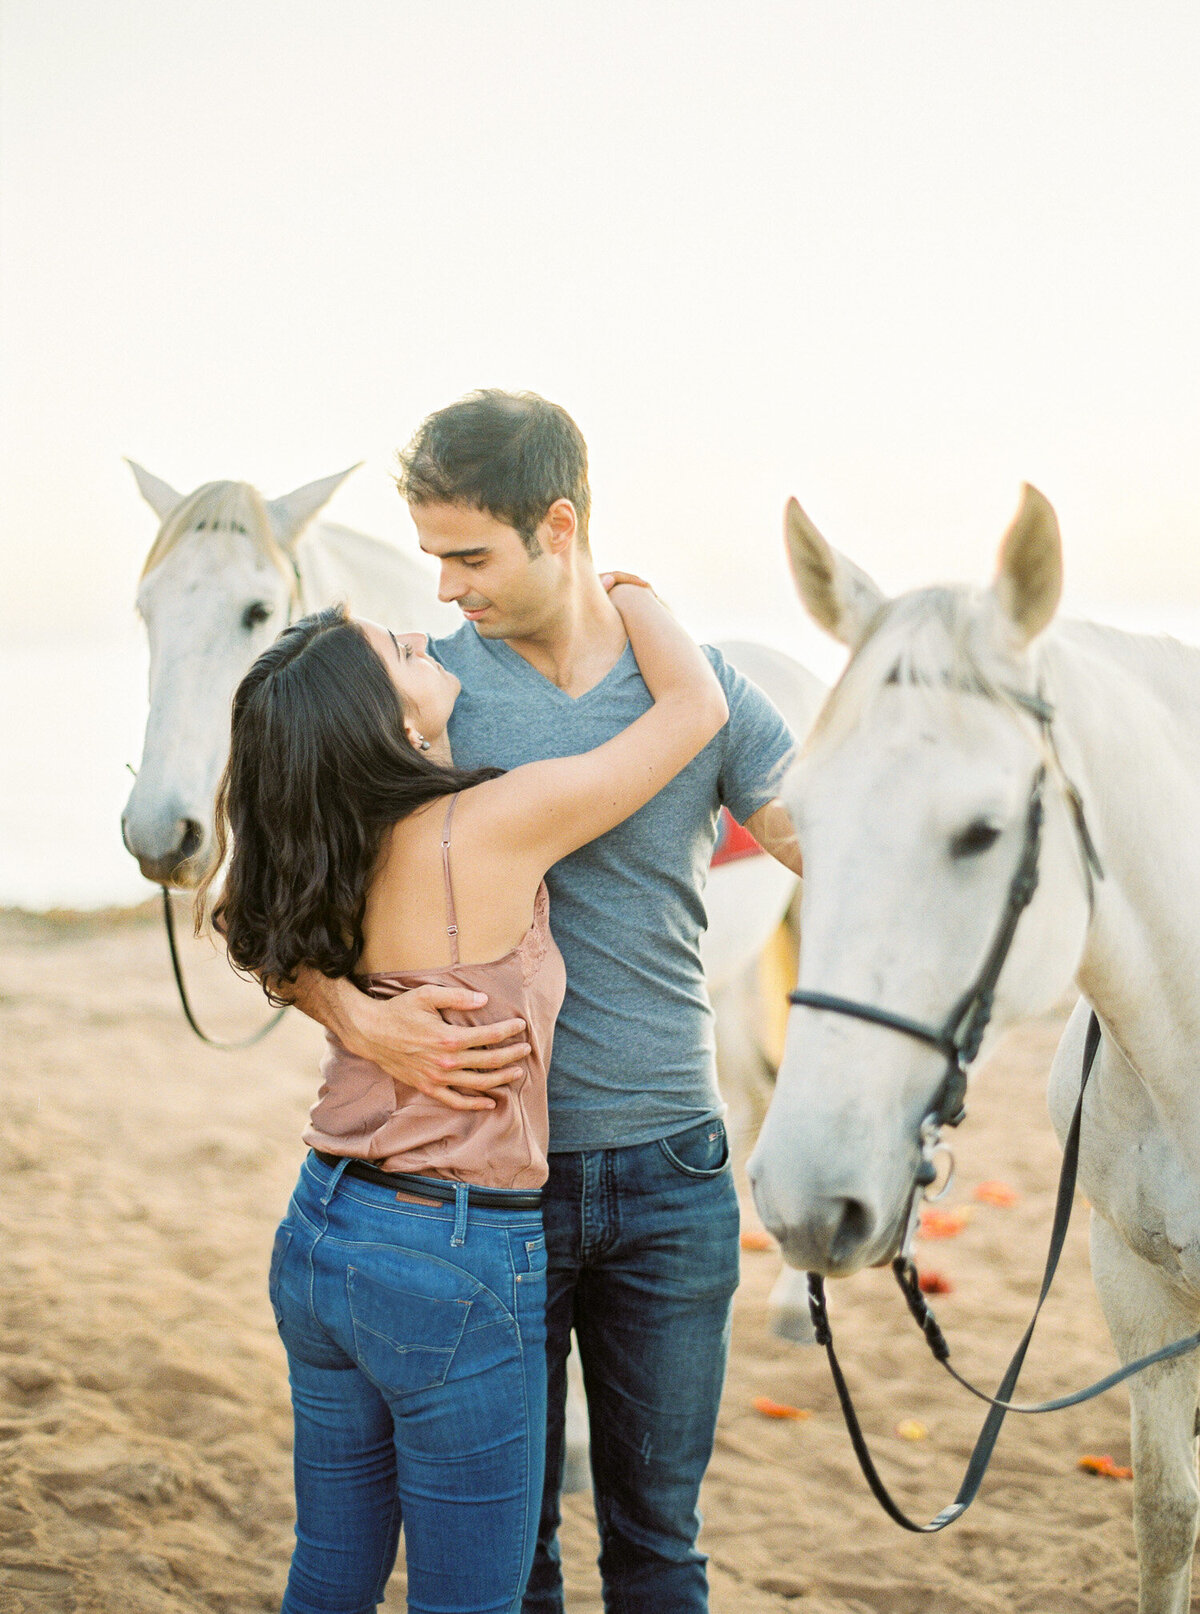 beach_horseback_riding_wedding_proposal-26